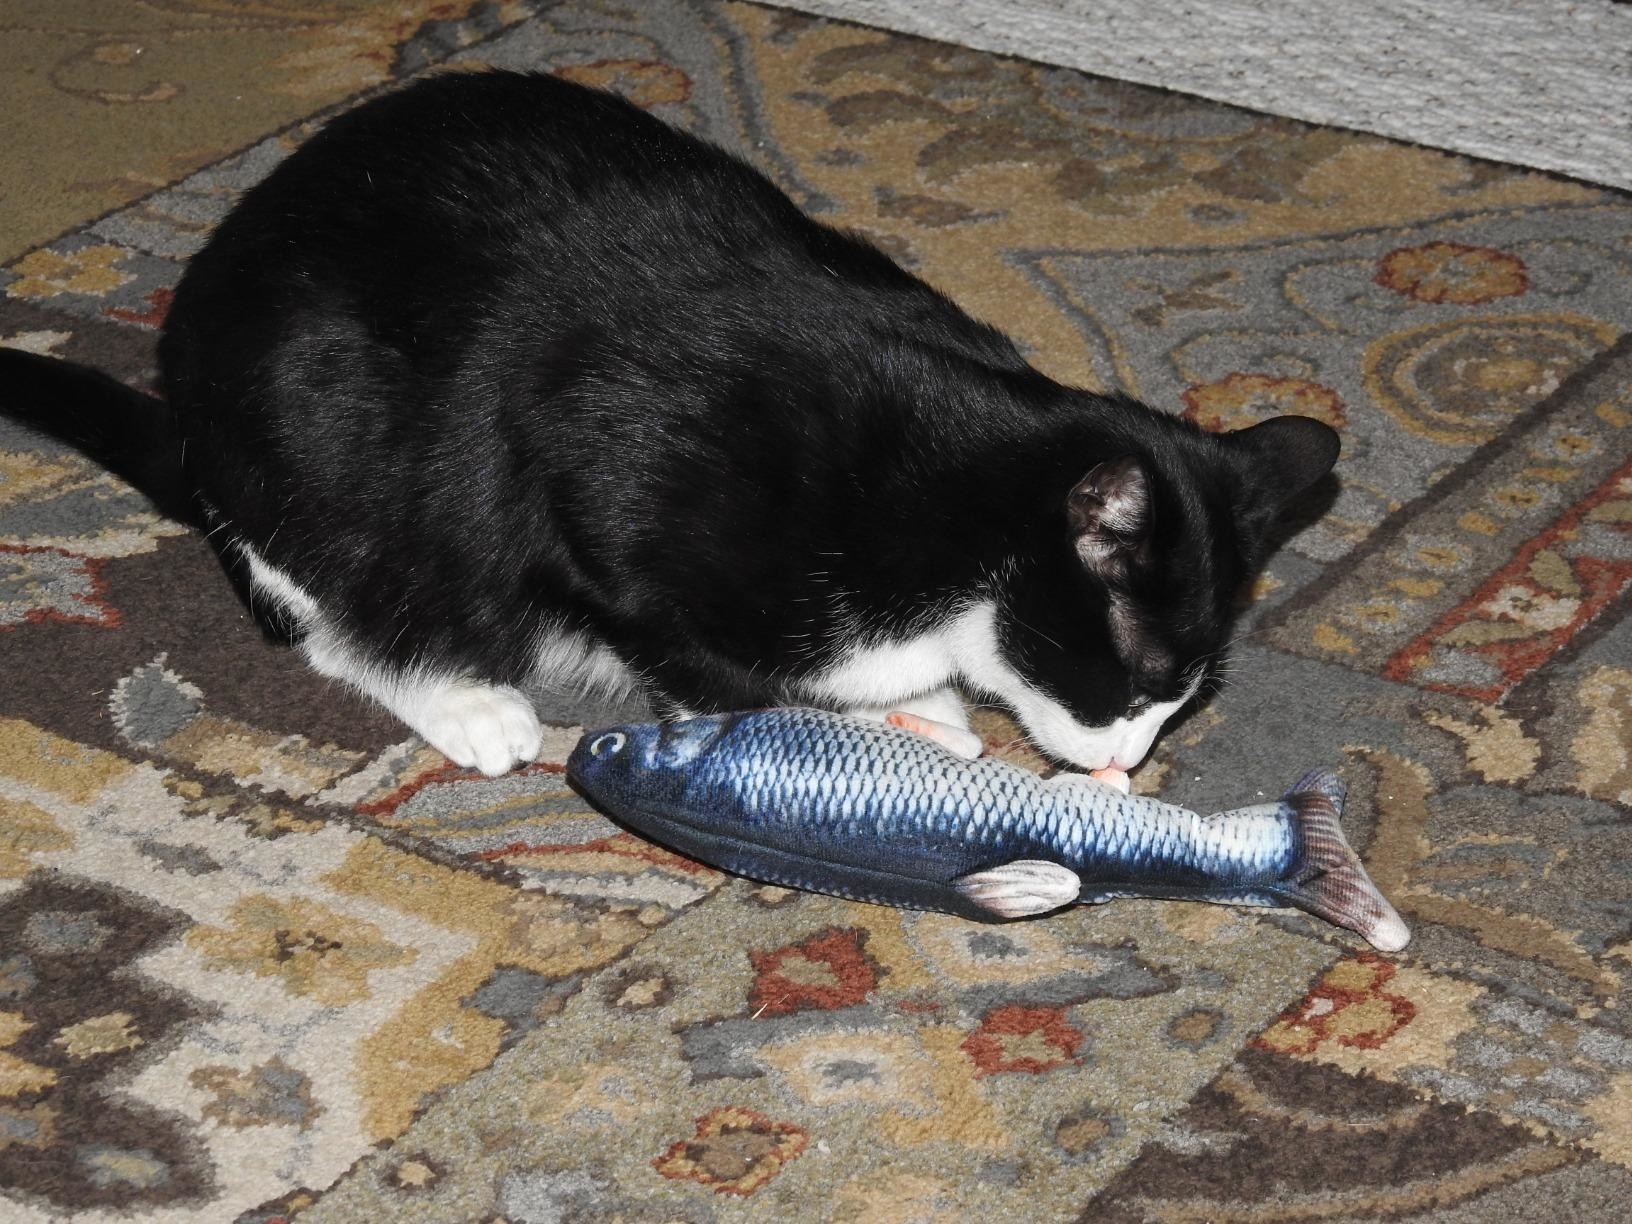 A cat playing with the fish toy, which is fabric, but designed to look like a fish